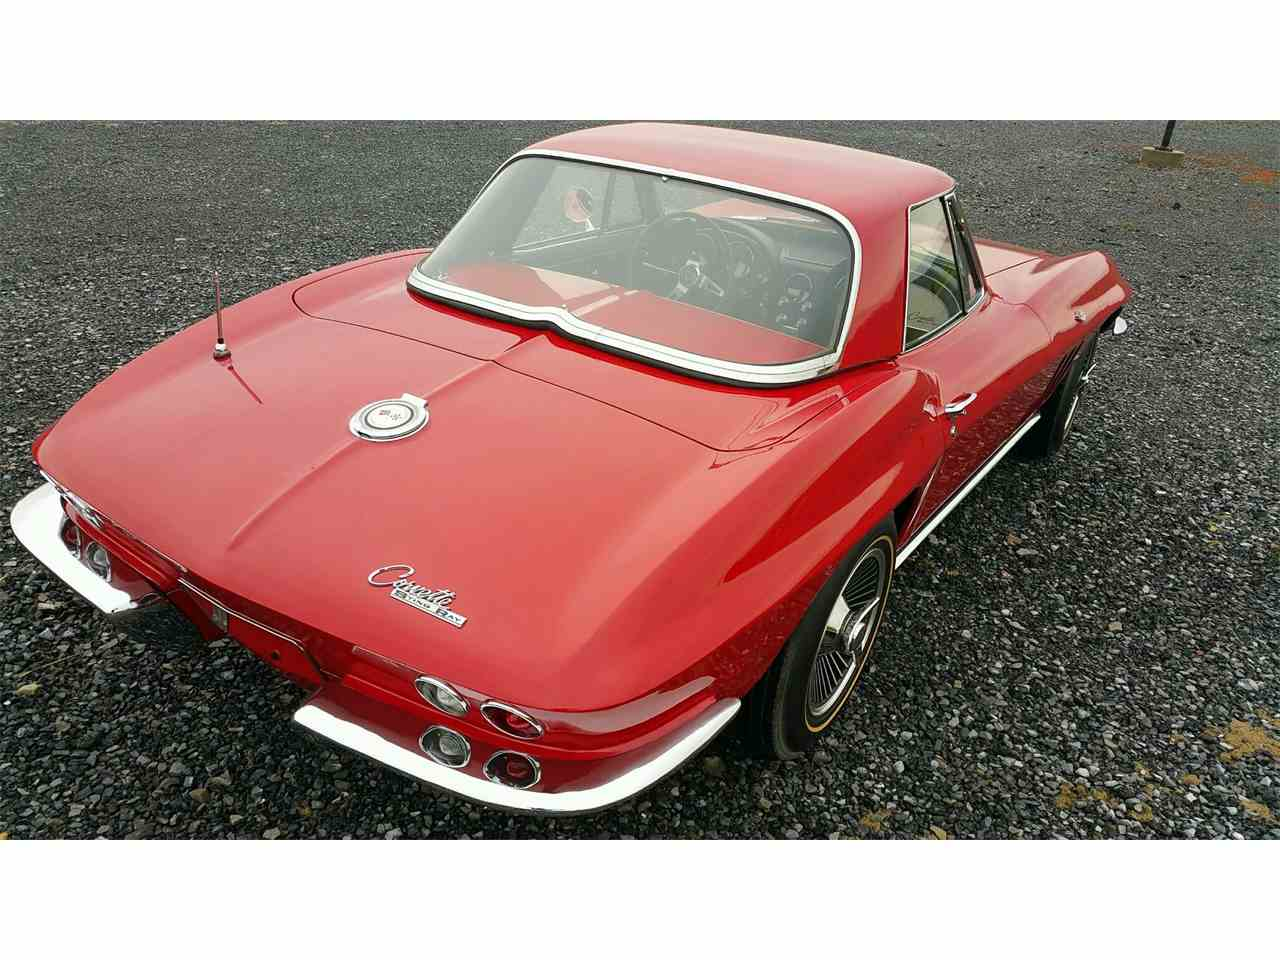 Large Picture of Classic '65 Corvette located in N. Kansas City Missouri - $69,995.00 - MO2I